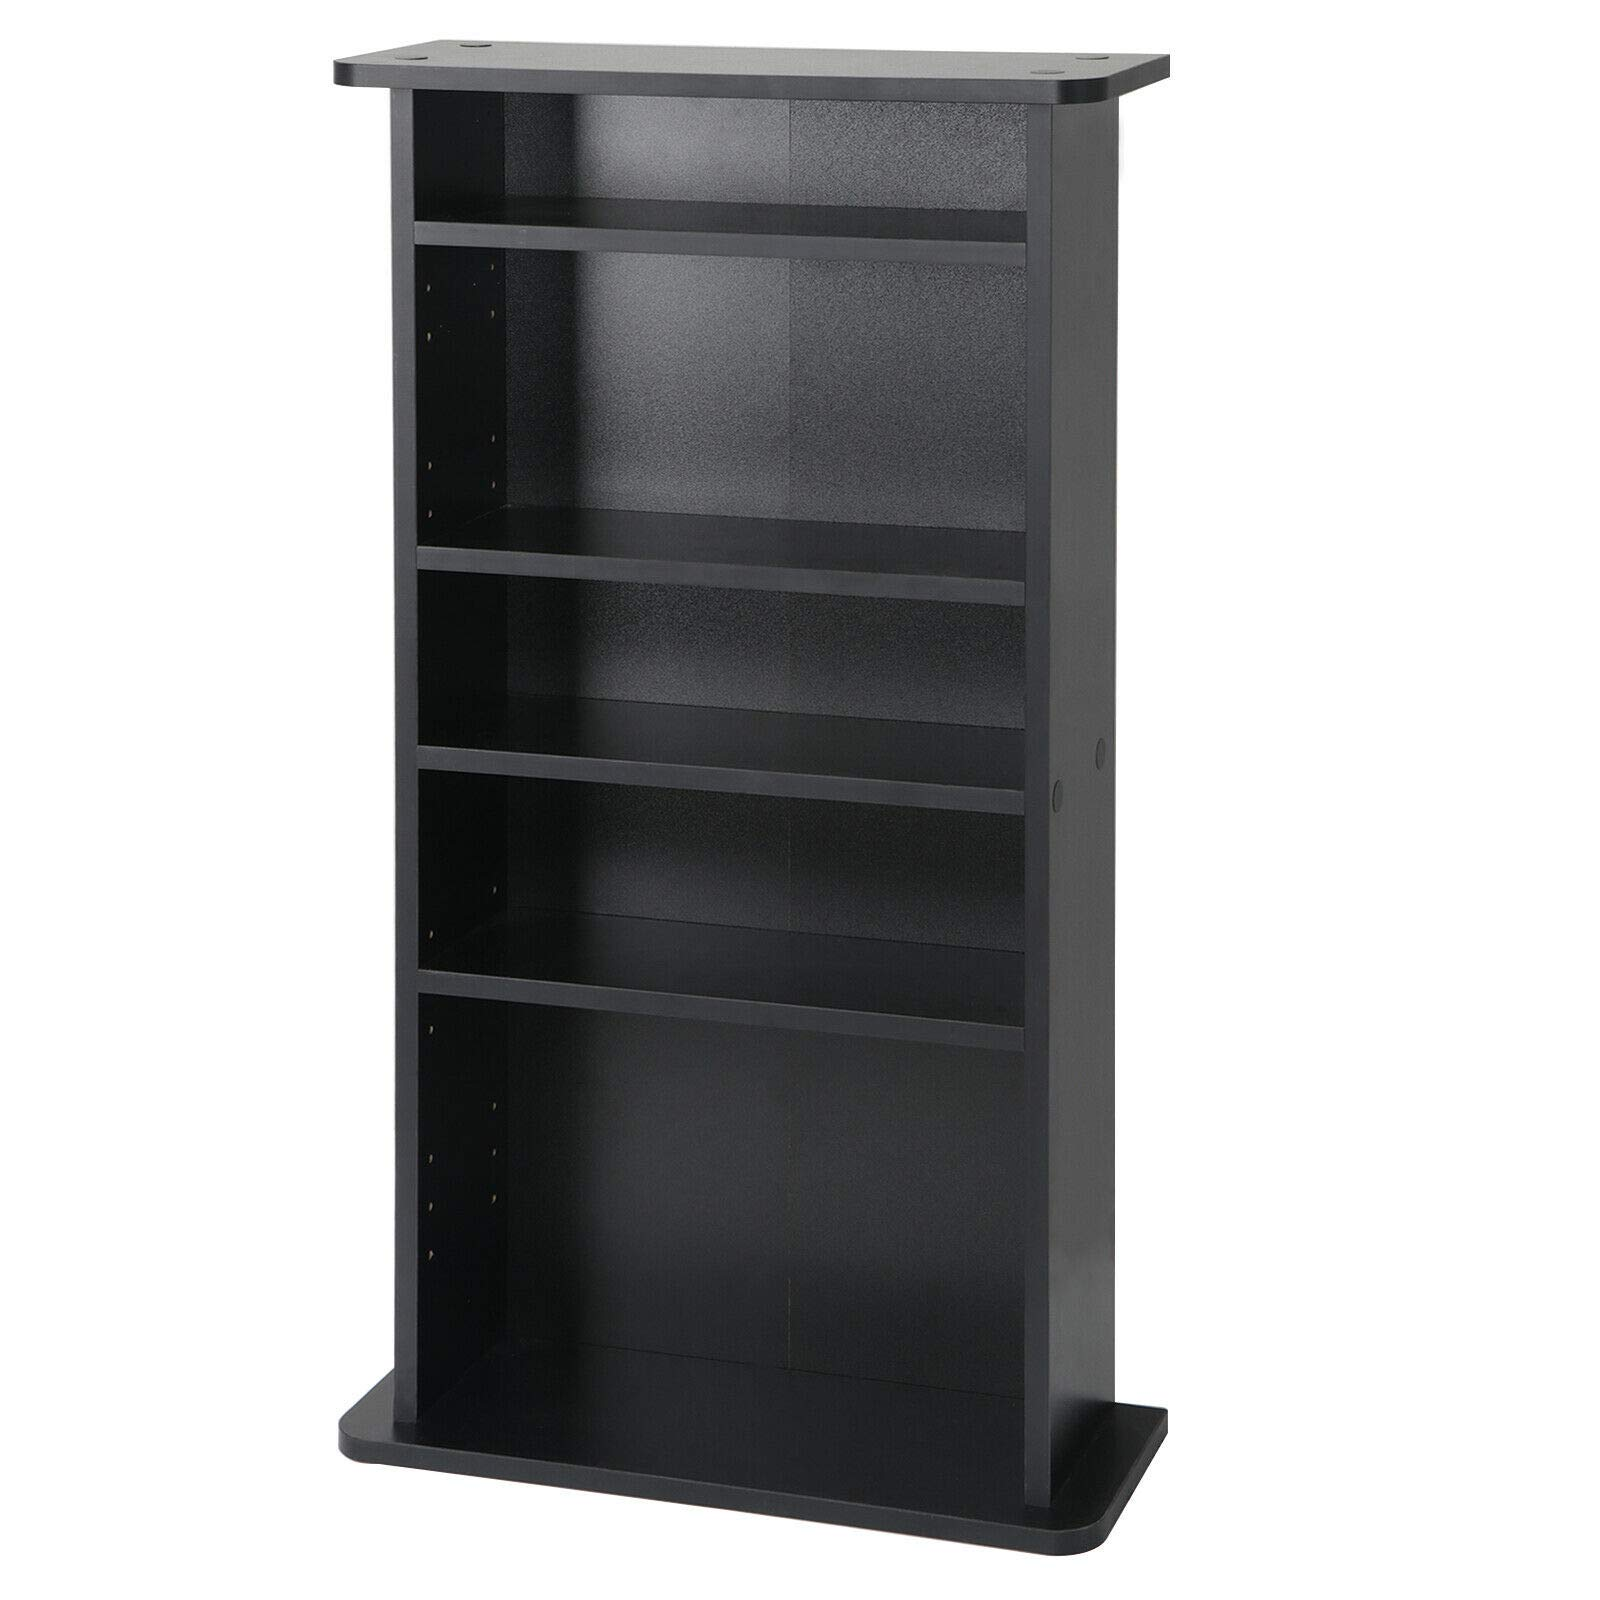 Dj_siphraya Multimedia Storage Cabinet Luxury Style DVD Rack Book Shelf Organizer Stand Black Made of Particle Board Overall Dimensions: 19 x 36 x 7 inch Durable. Always be Stable.